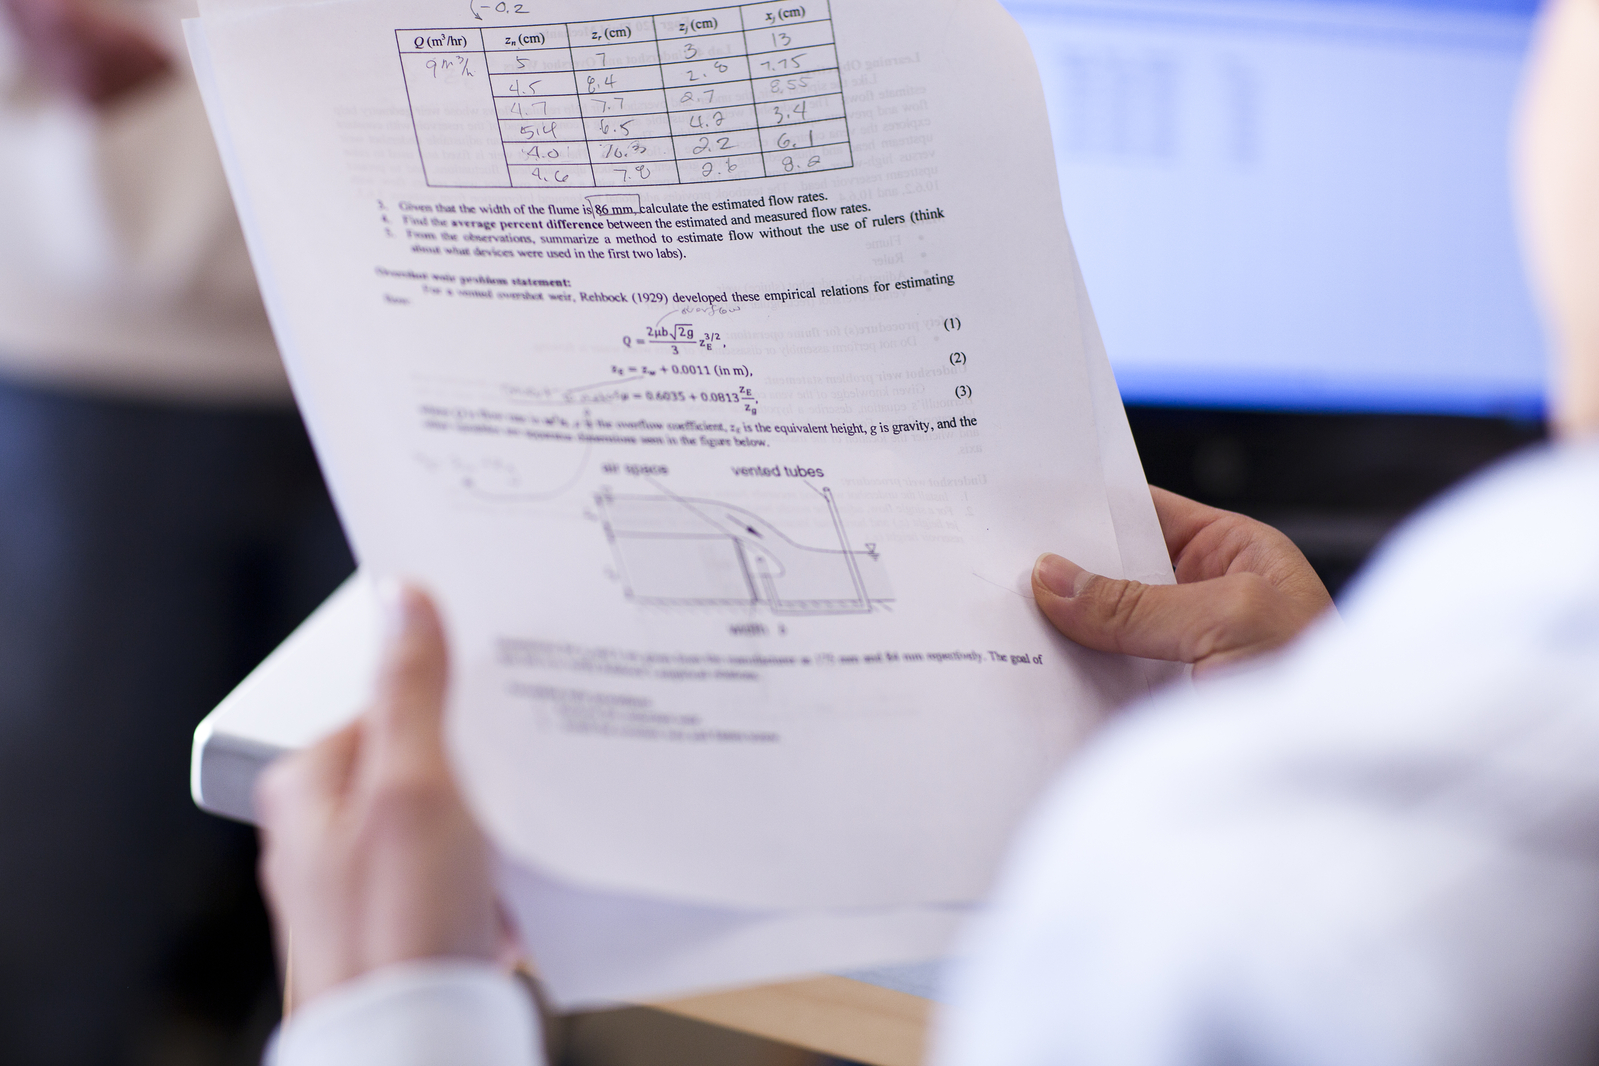 Researcher reviewing data on paper